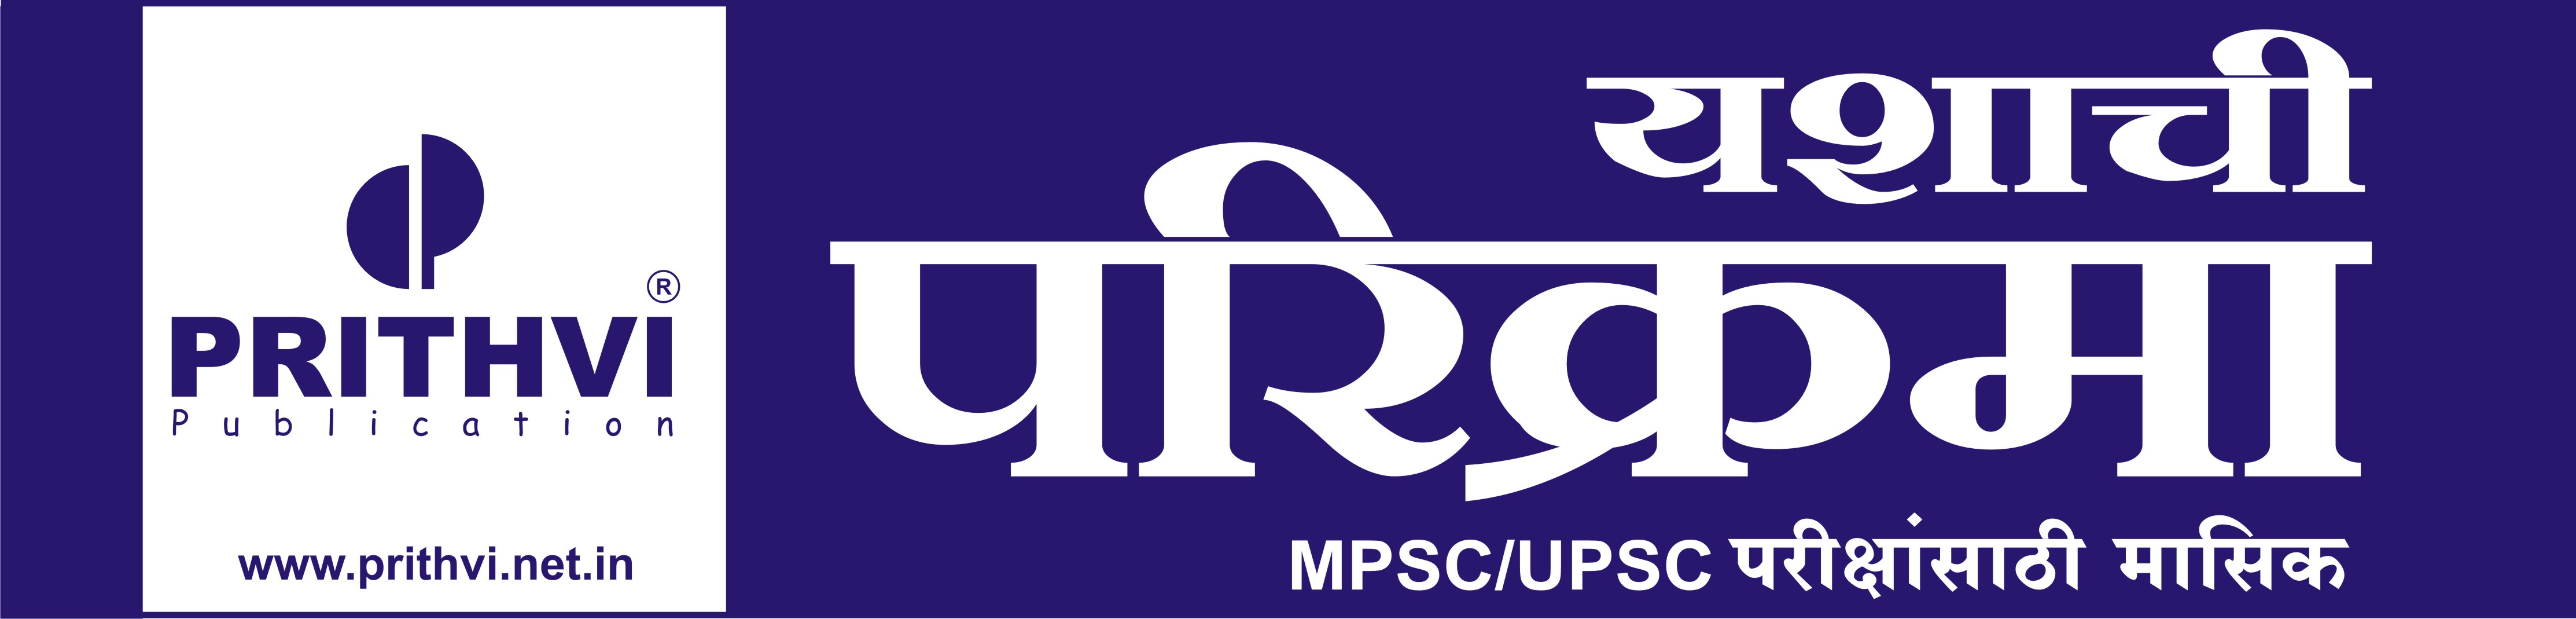 Yashachi parikrama by MPSC/UPSC Classes Prithvi publication